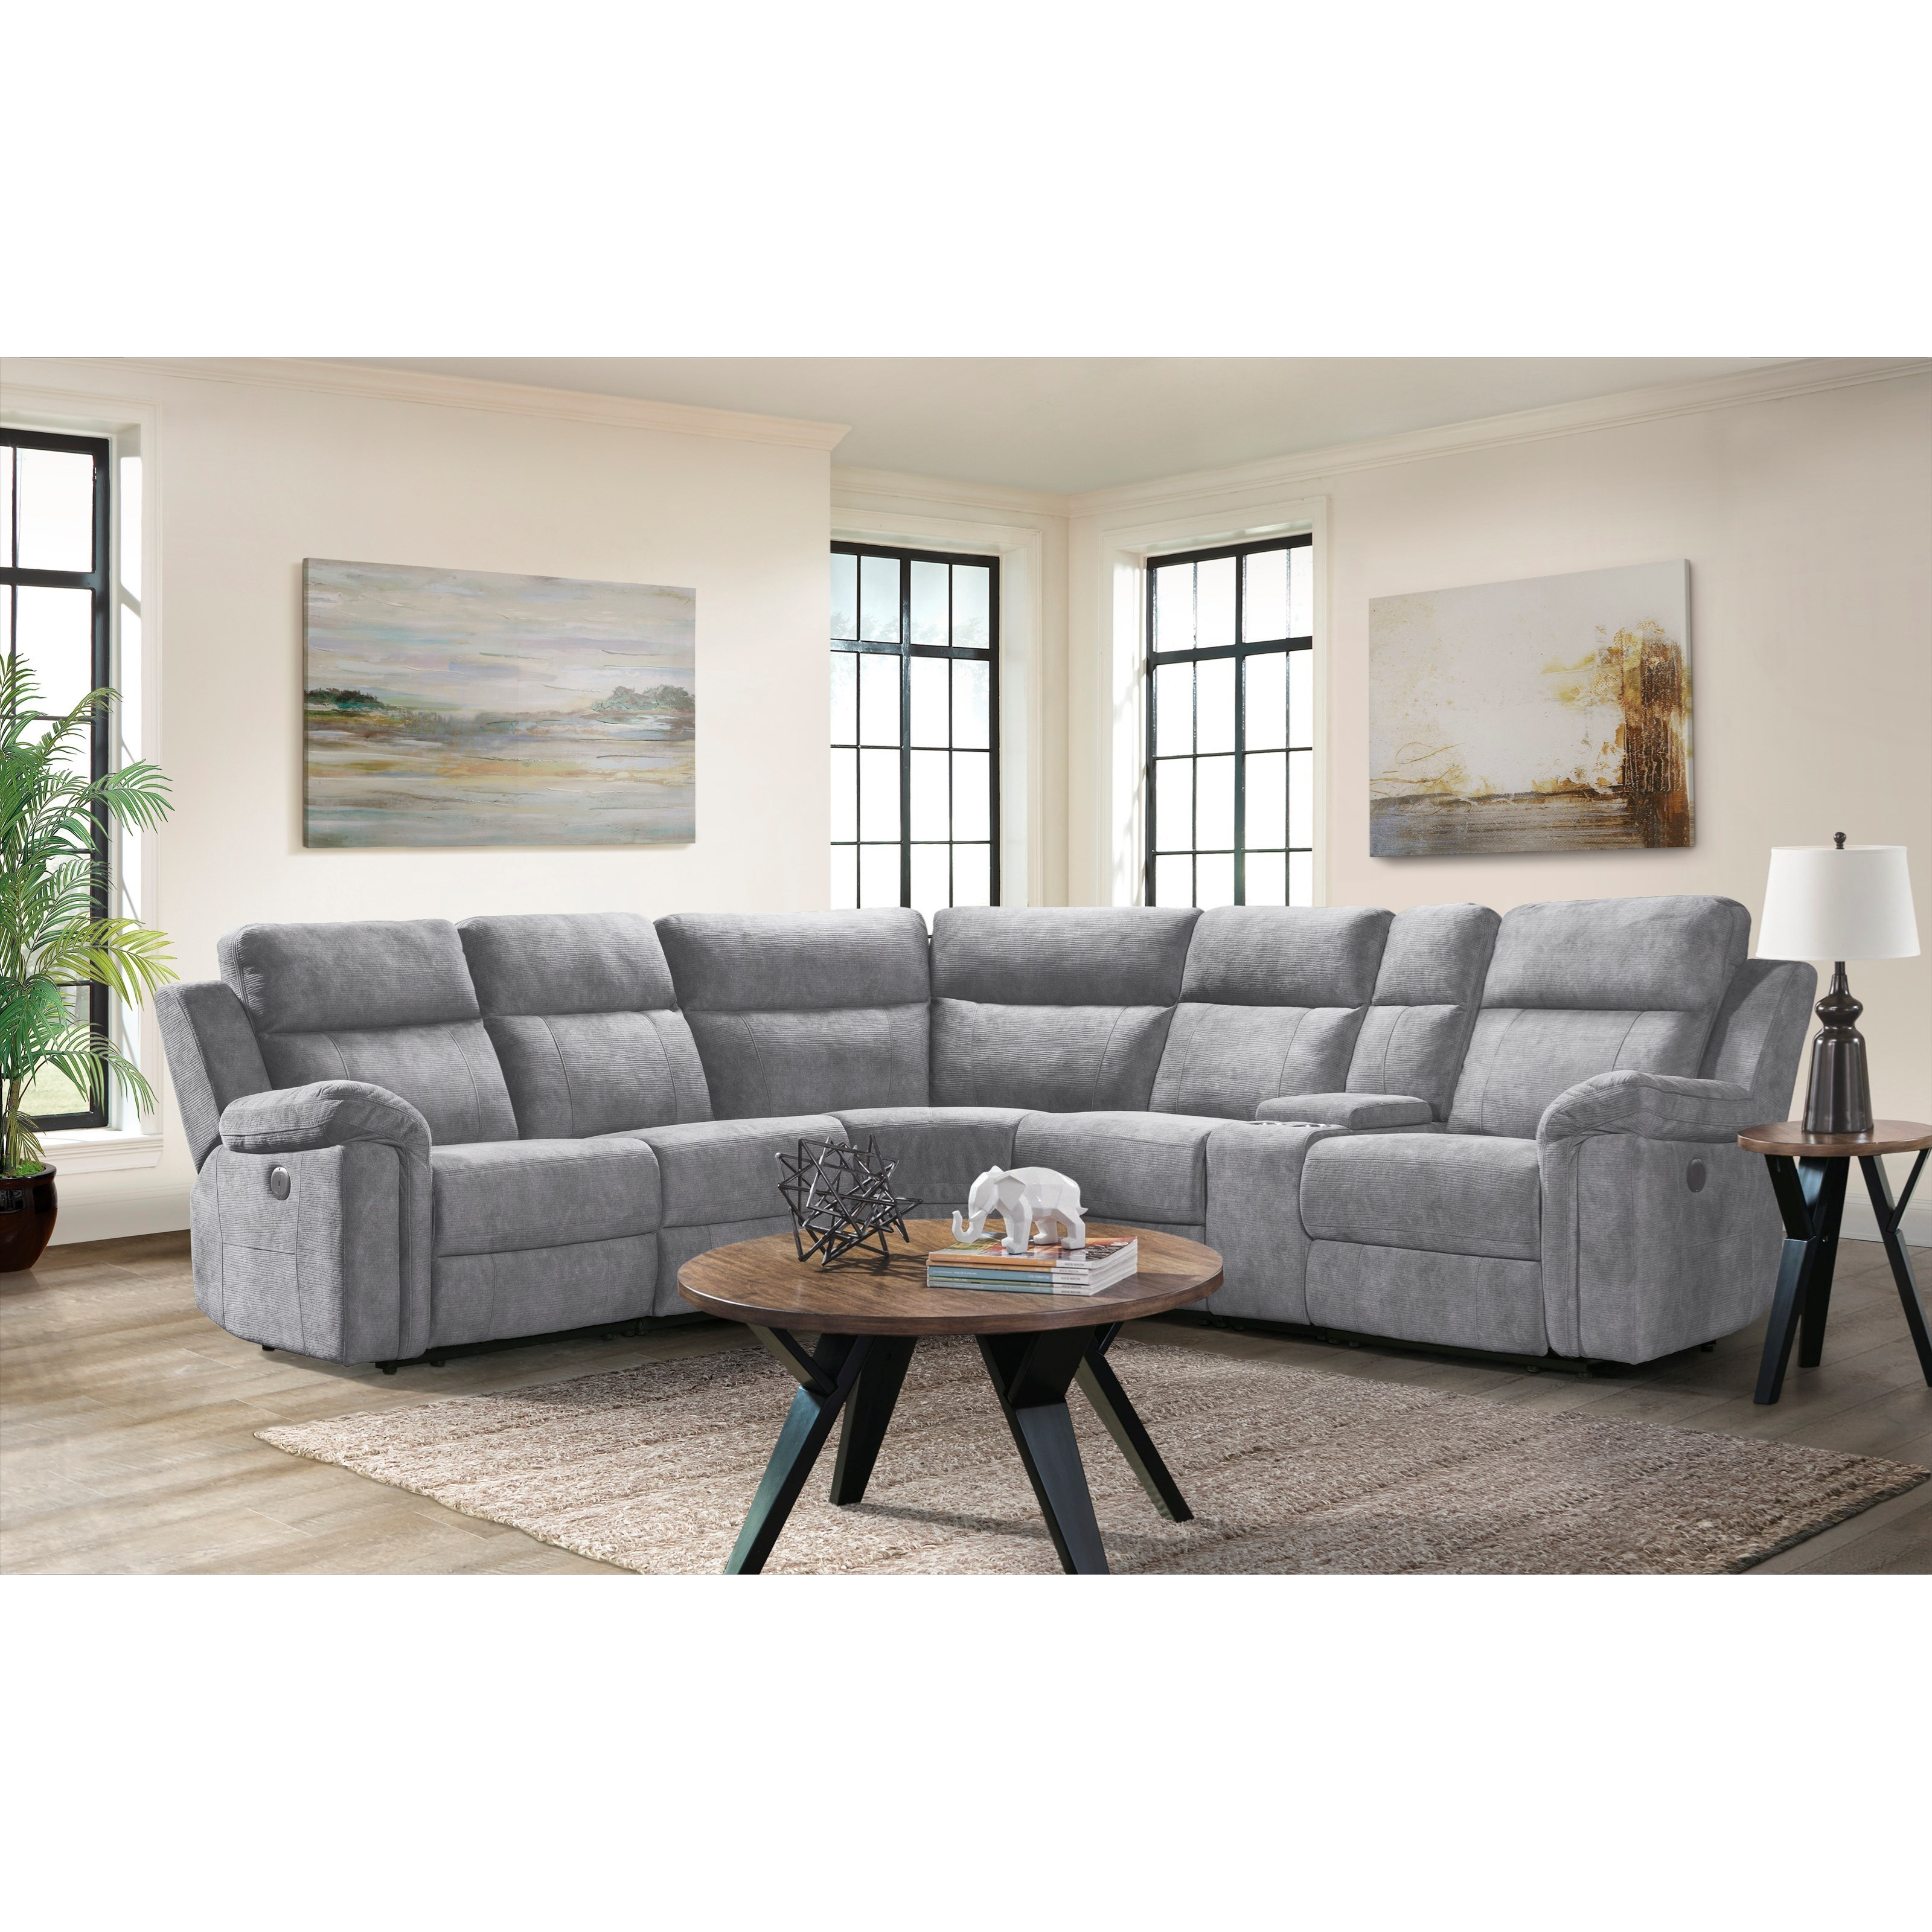 thomas 6 piece power reclining sectional sofa with cupholder storage console at walker s furniture